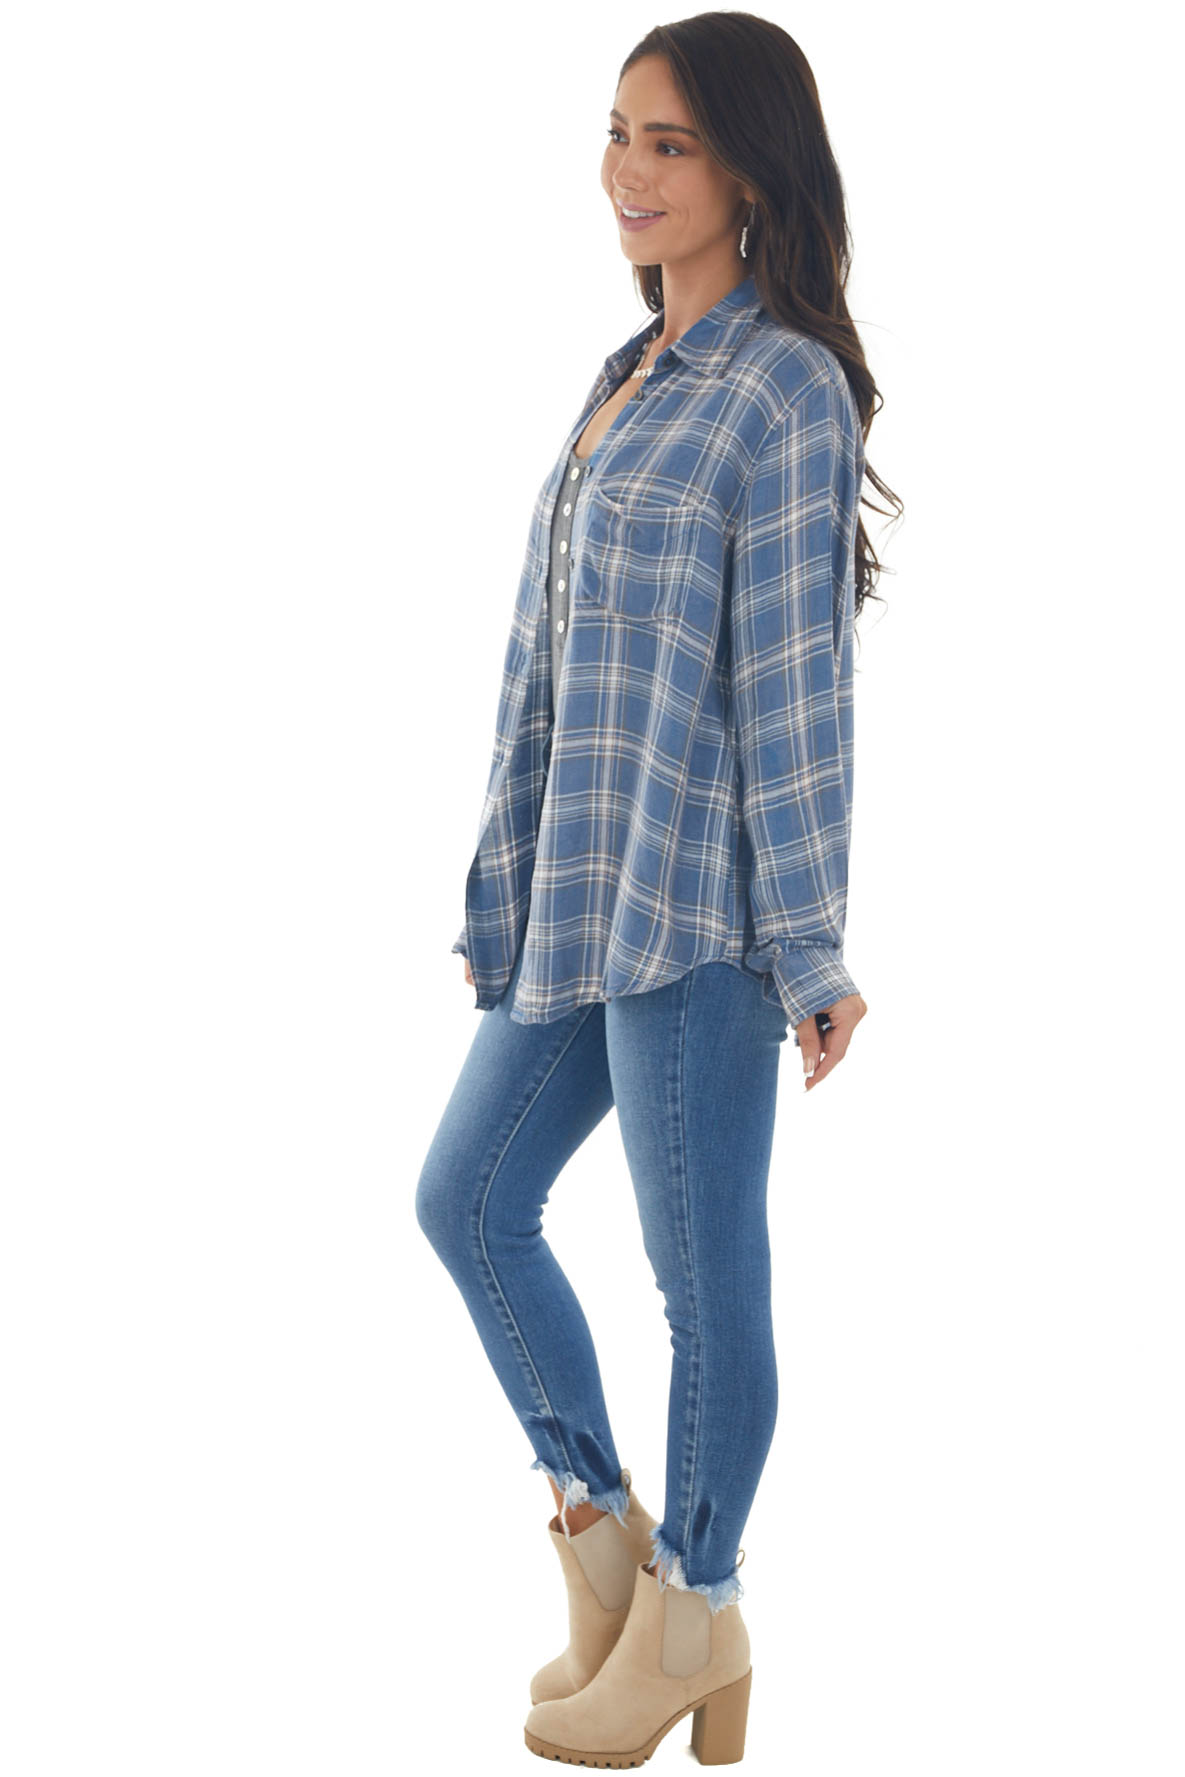 Denim Blue Plaid Long Sleeve Button Up Top with Pocket